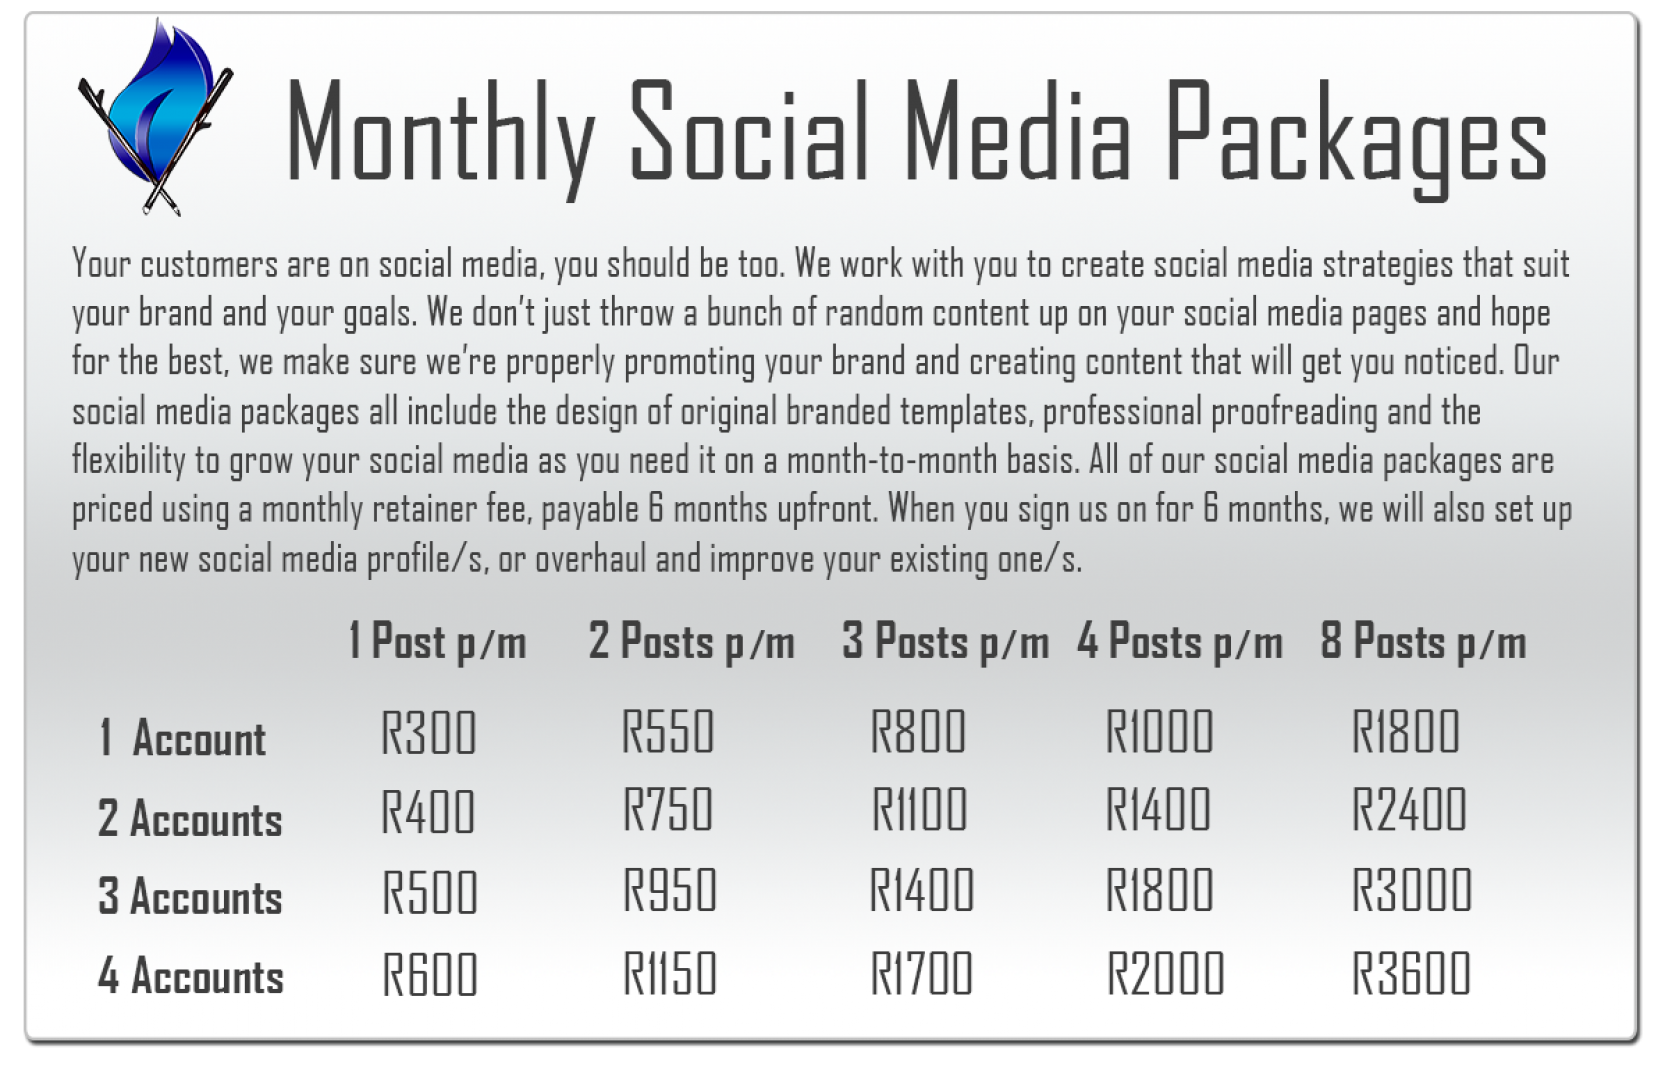 Monthly Social Media Packages